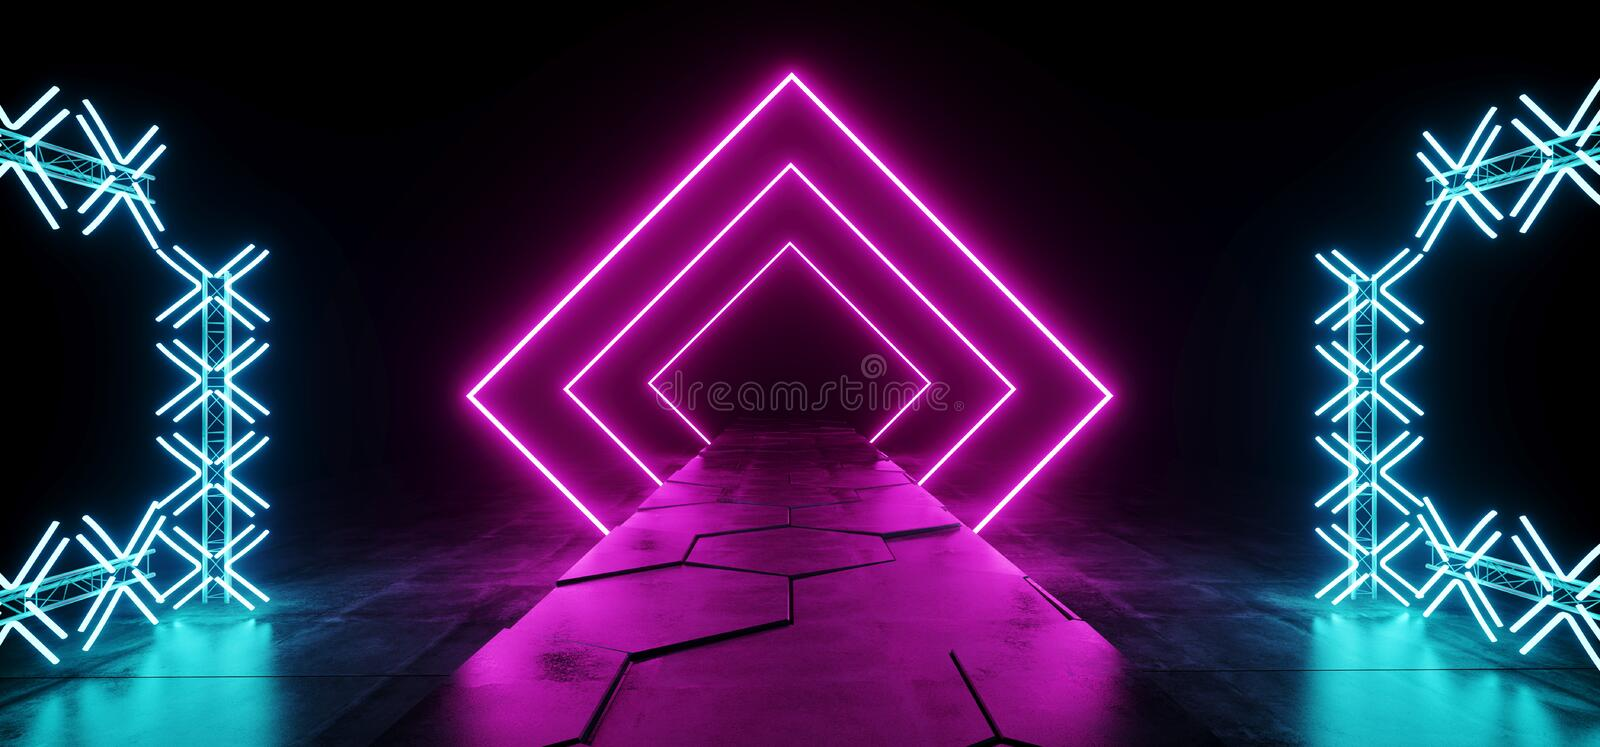 Futuristic Modern Sci Fi Club Dance Stage Construction Neon Glowing Rectangle Shaped Purple Pink Blue Laser Stage Lights On Dark royalty free illustration